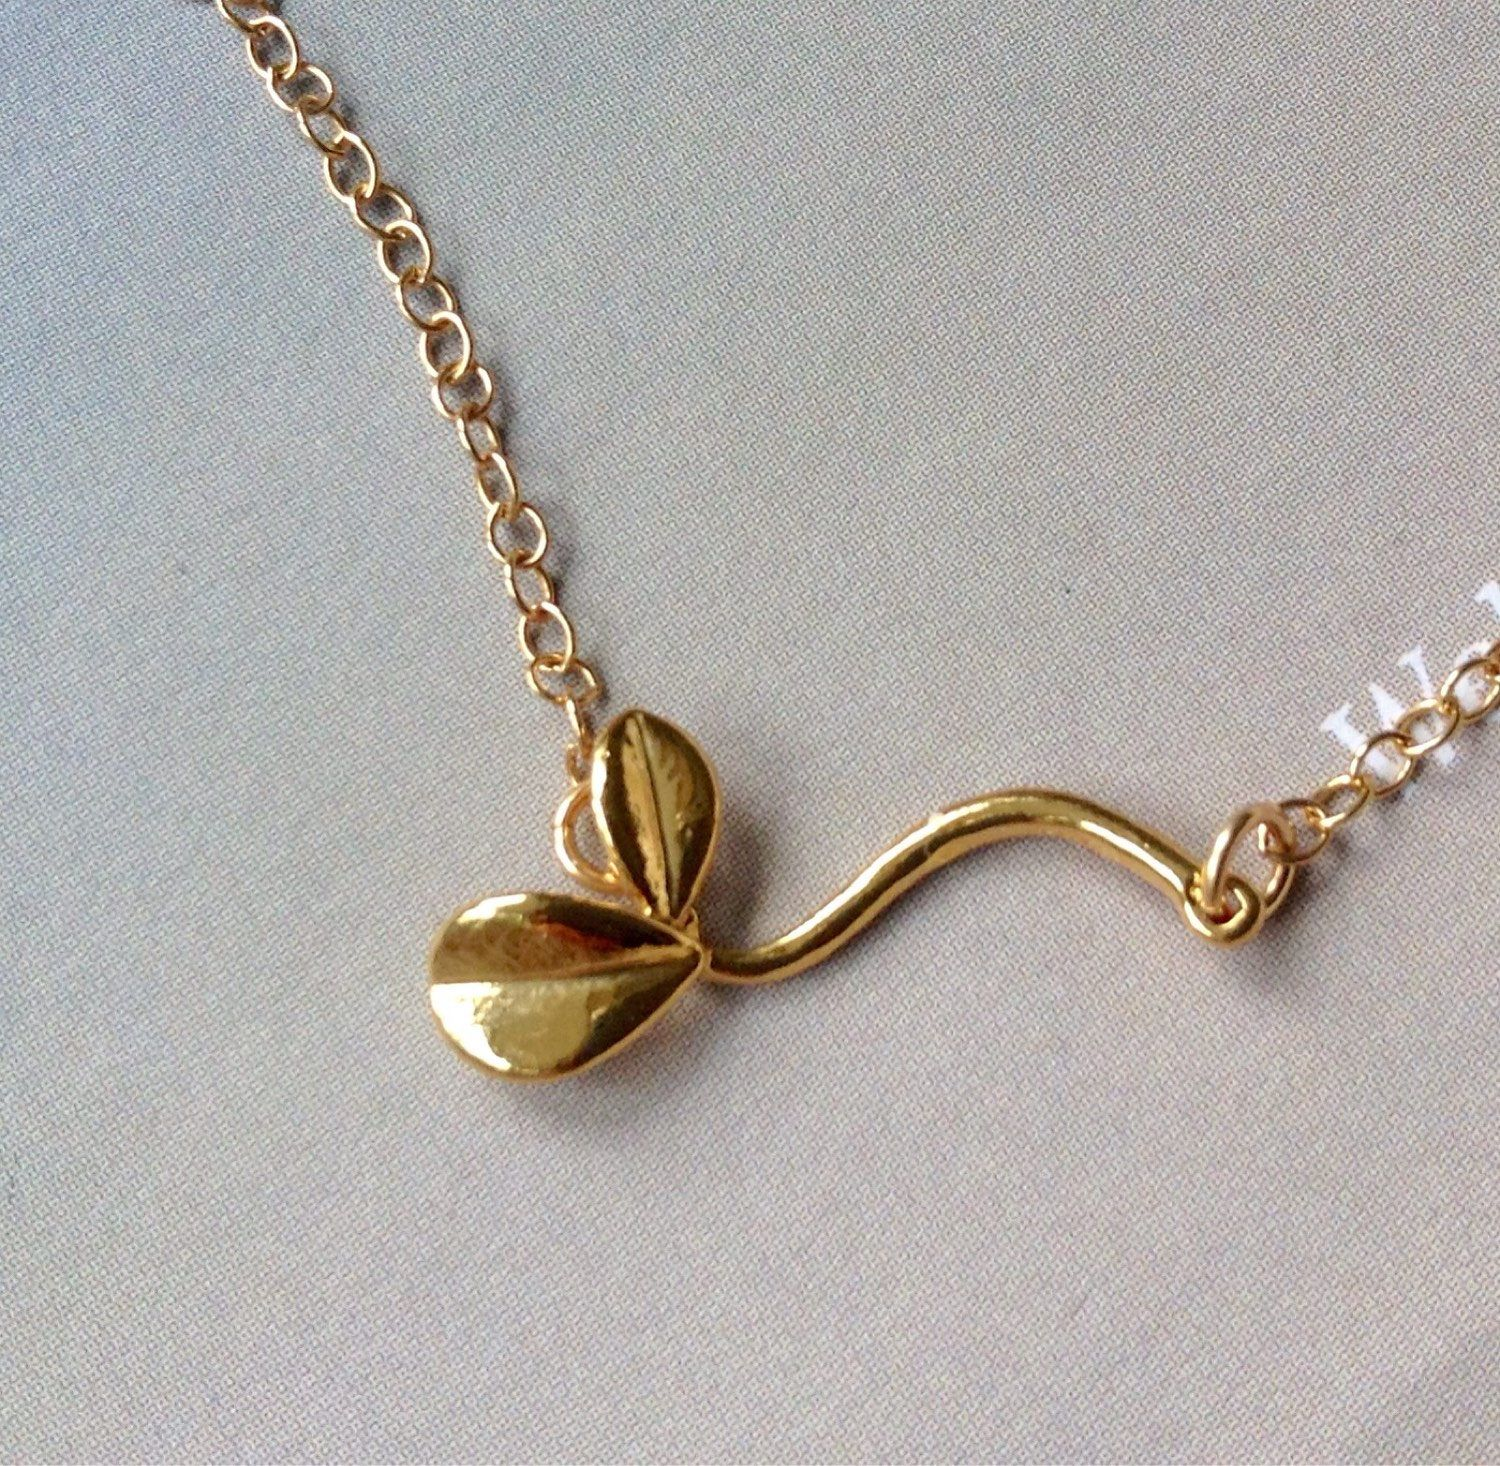 oval necklace yellow and pearl shop pea jewellery gold white sweet